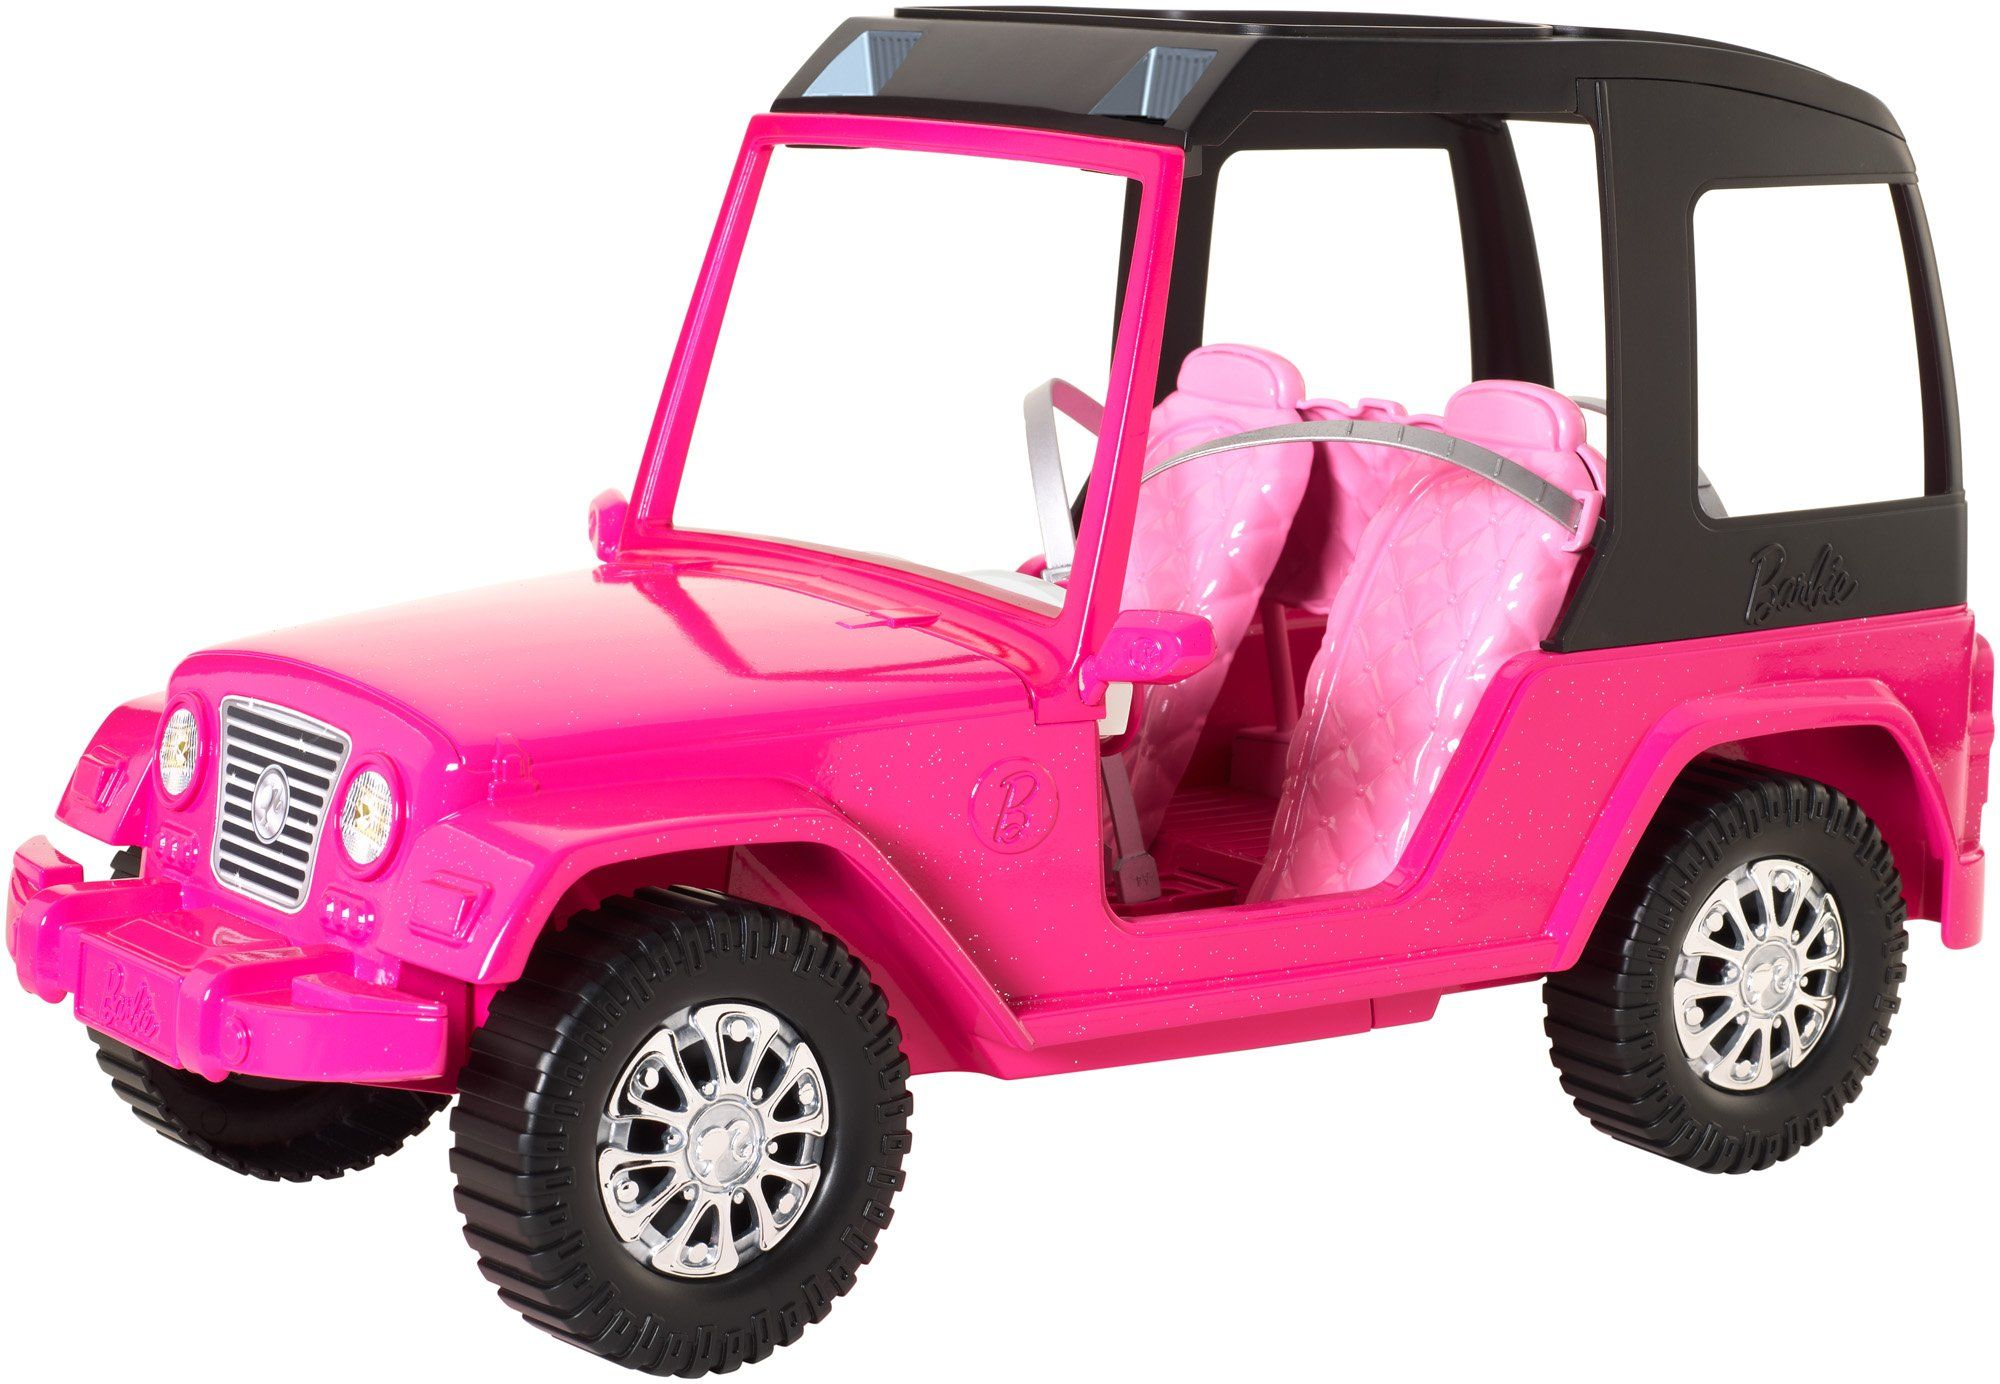 Jeep car toys  Barbie Sisters Cruiser Vehicle  GIFTS FOR HARPER QUINN  Pinterest